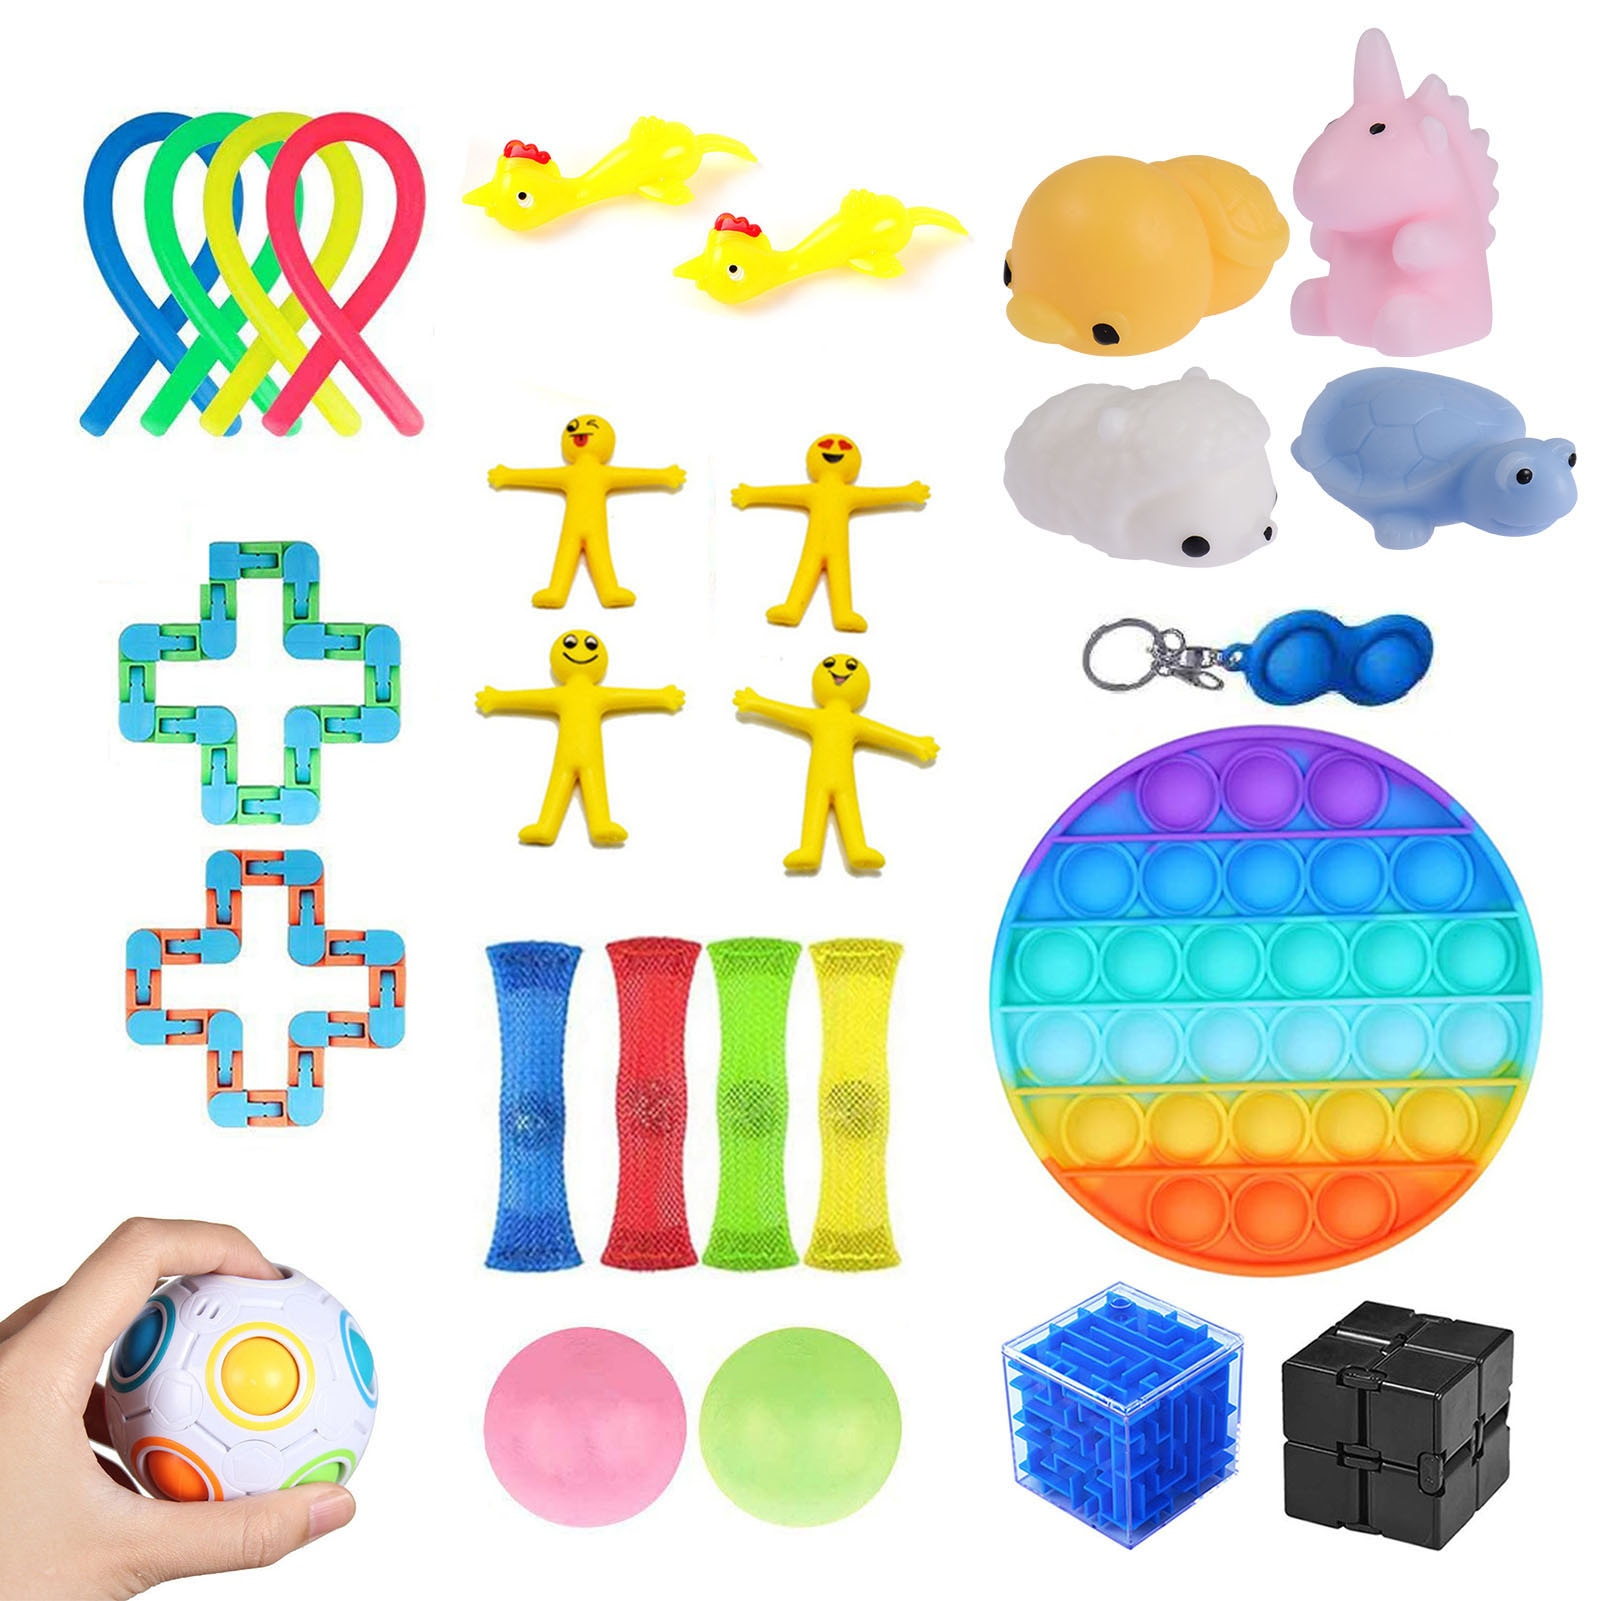 27 Pcs Durable Sensory Fidget Toys Set Stress Relief Anti-Anxiety Sensory Toys For Children Adults ADHD enlarge